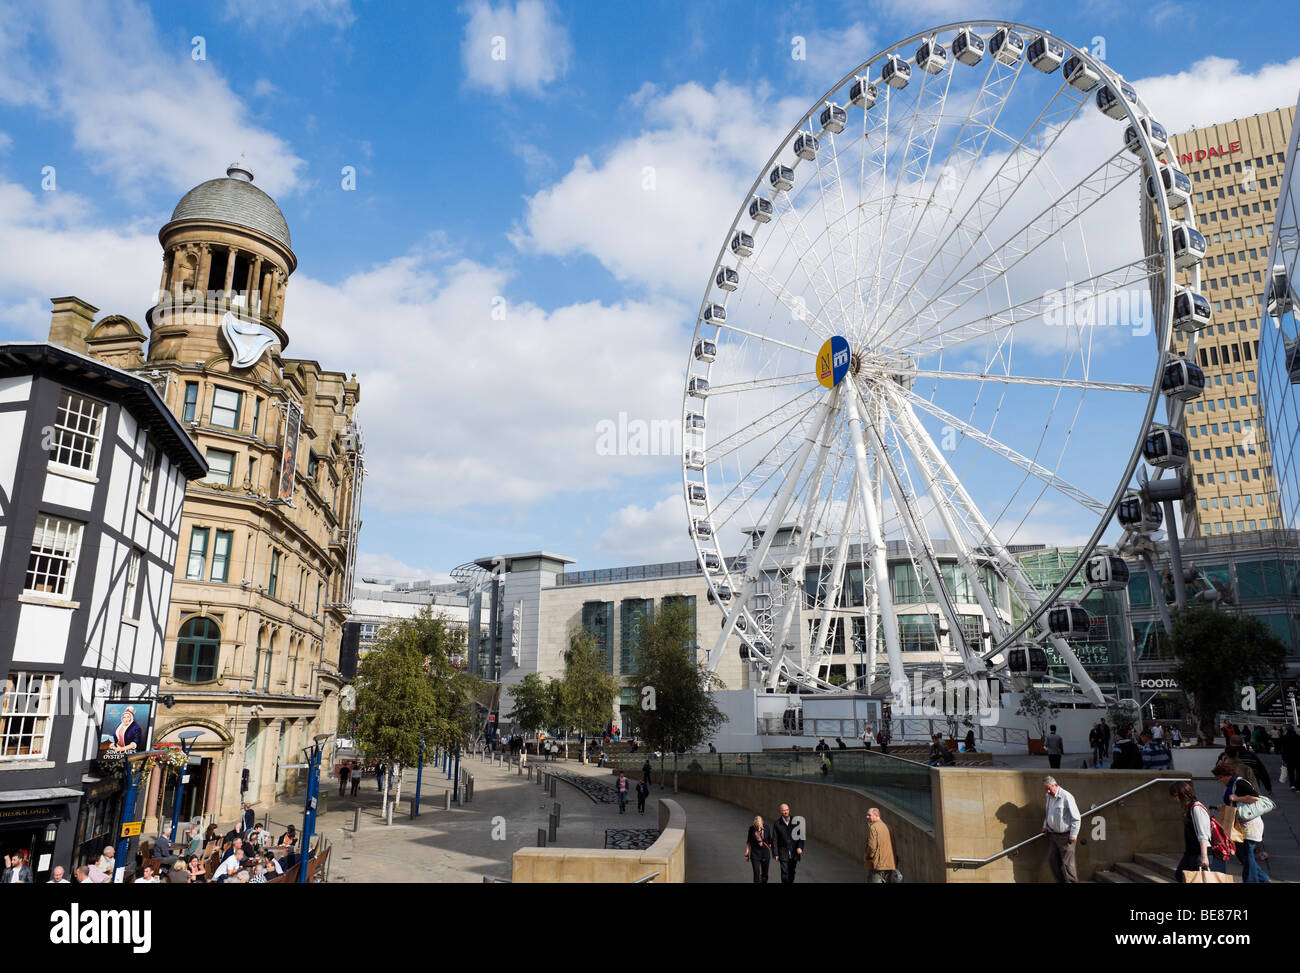 Exchange Square with the Manchester Wheel, Manchester, England - Stock Image